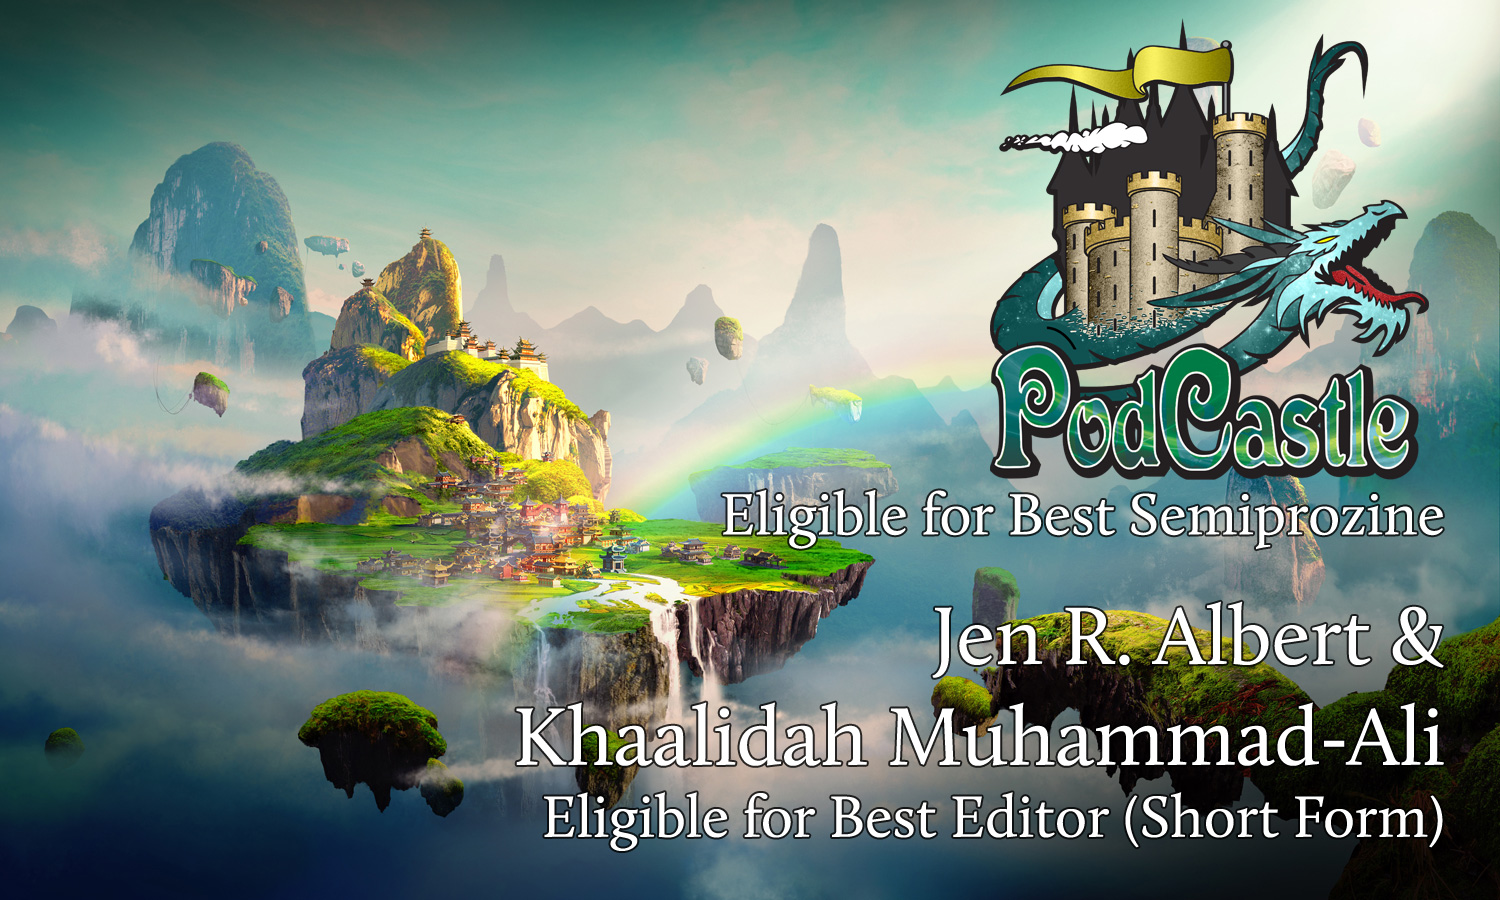 PodCastle 2018 award eligibility